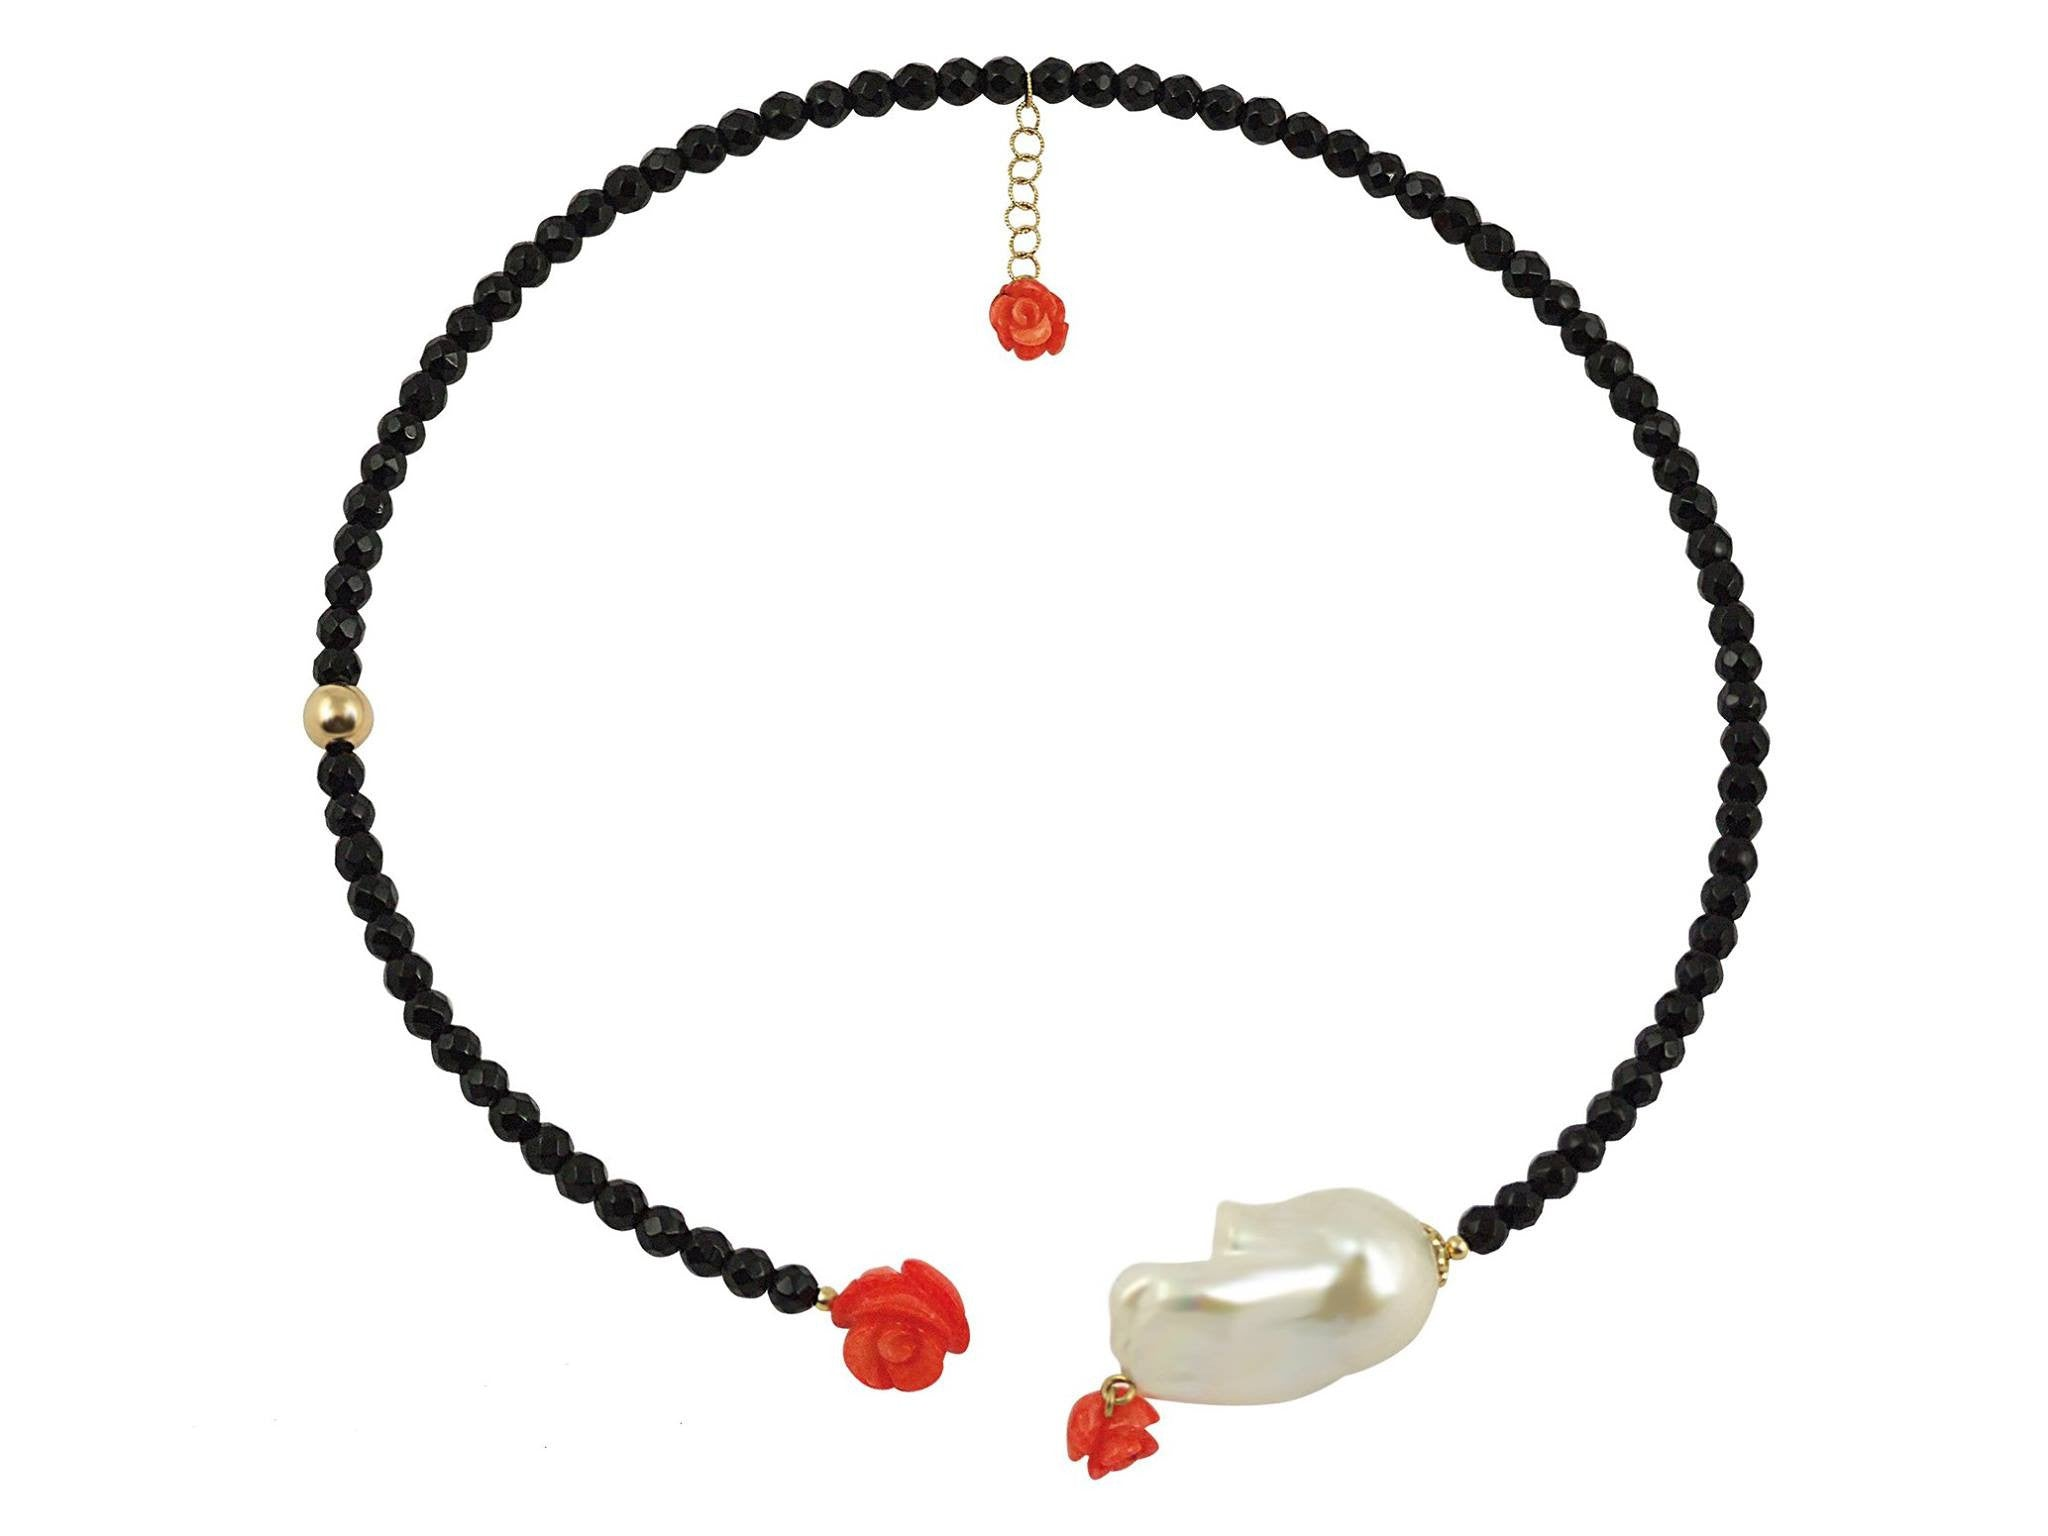 Rosaperla Necklace - Le Midi -  necklace - Ora by D'Amore Jewelers